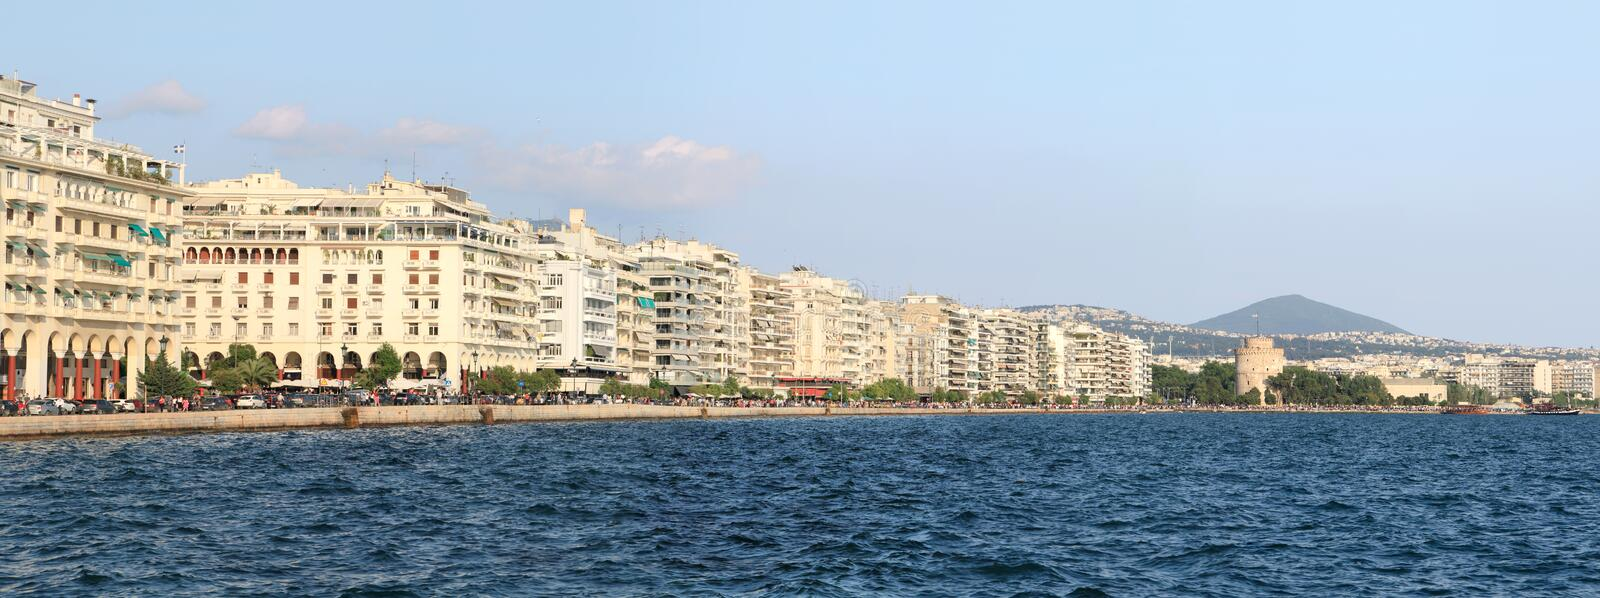 Thessaloniki (Griekenland) panorama royalty-vrije stock foto